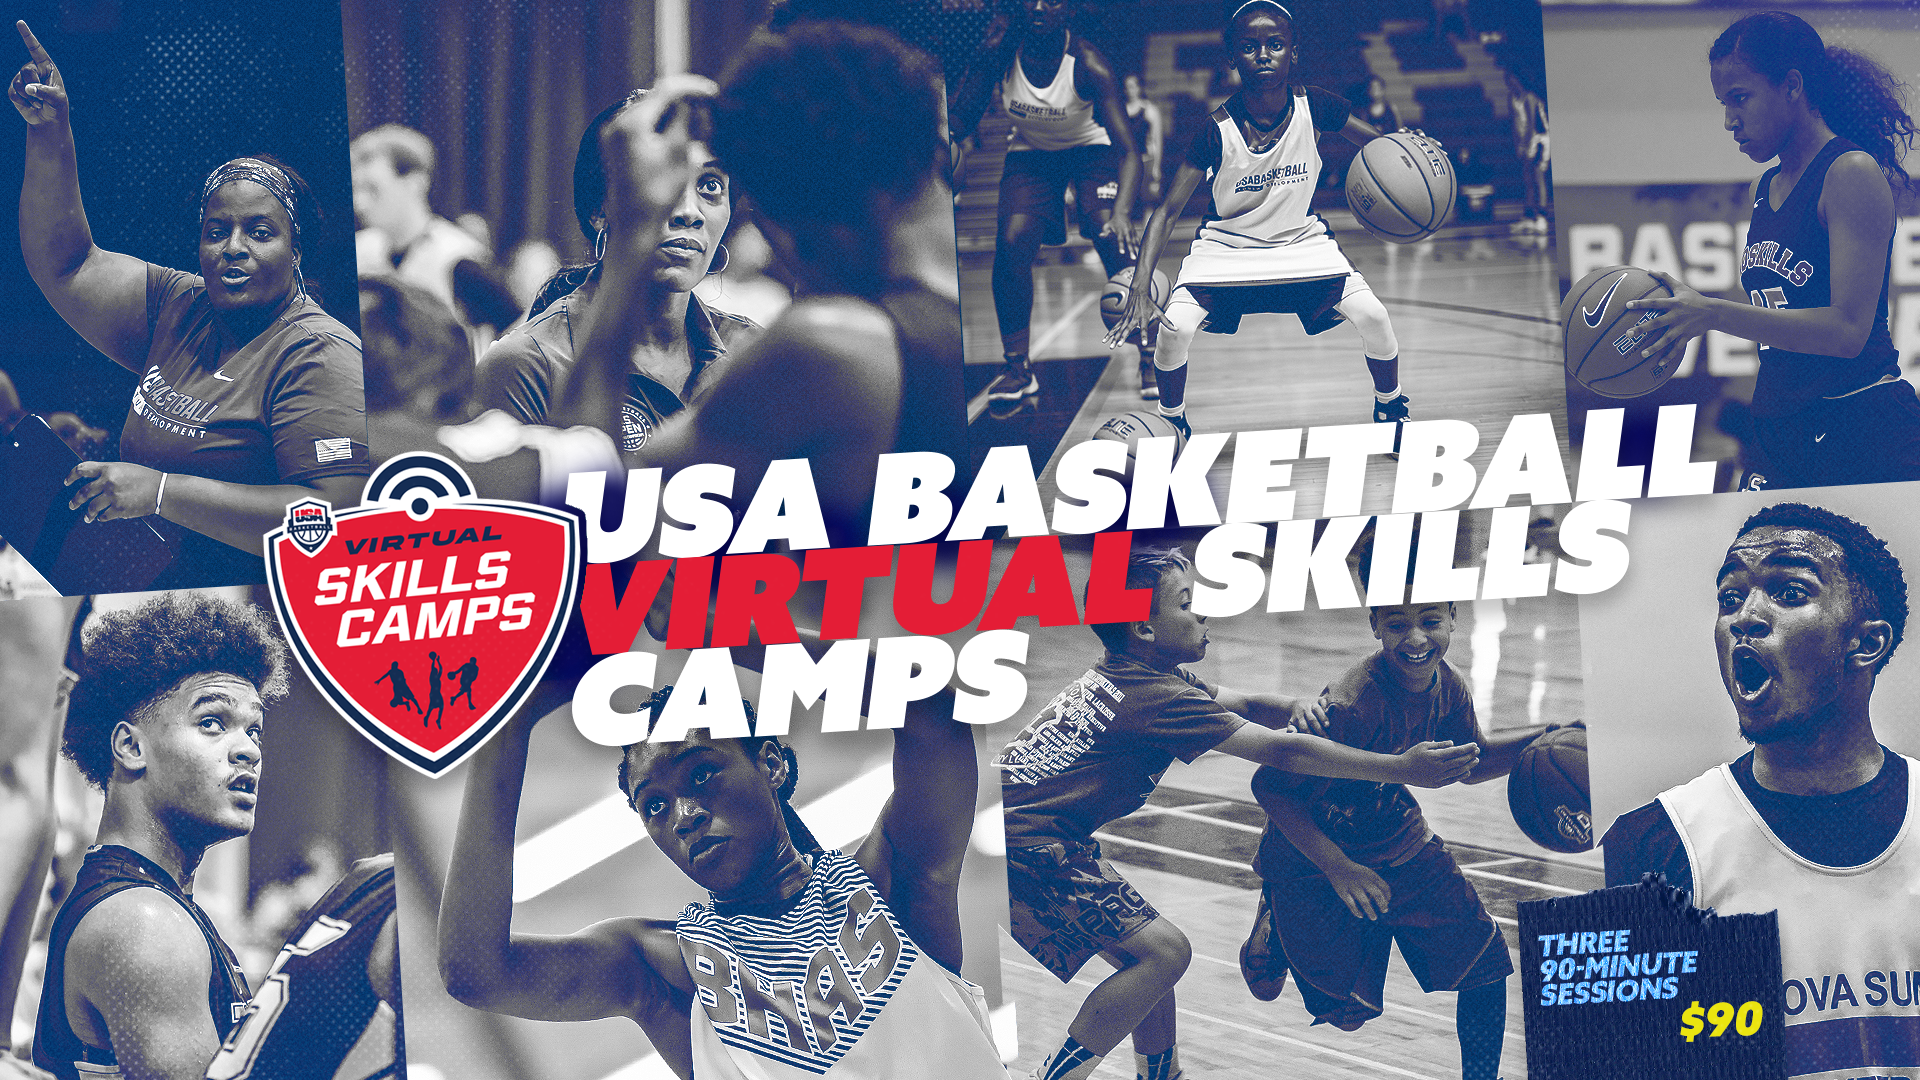 2020 Virtual Skills Camps October